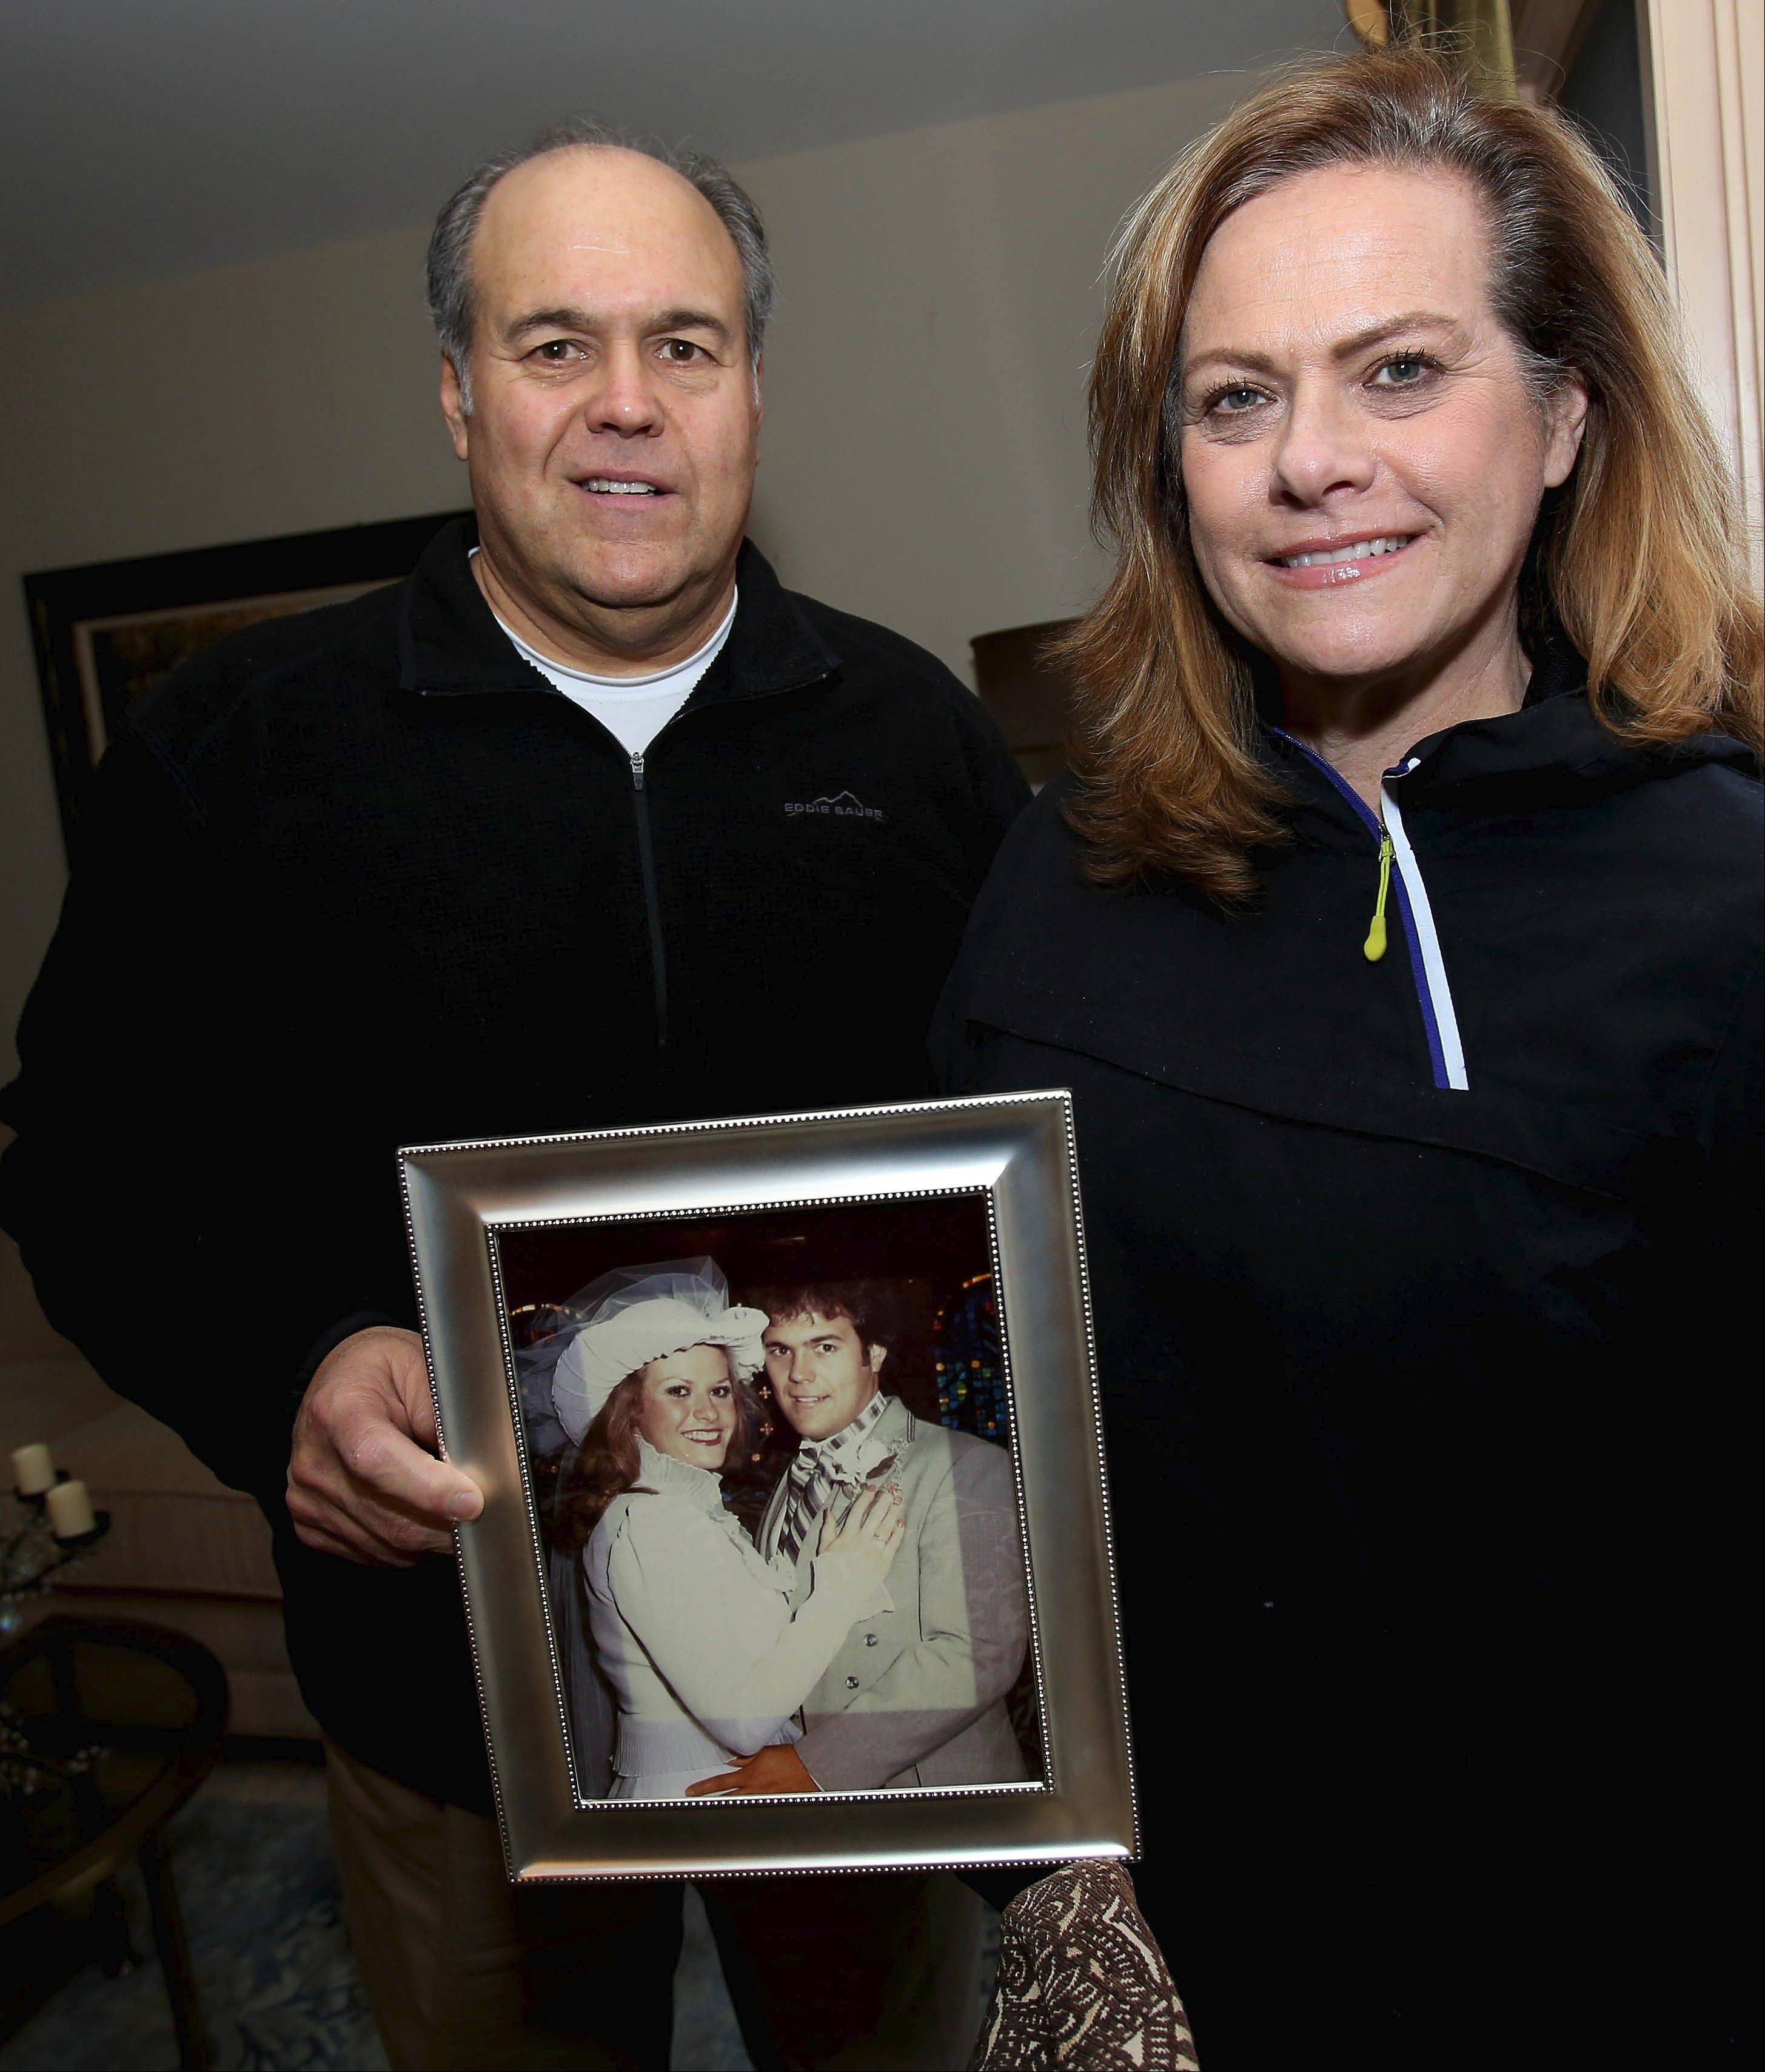 Mike Paulo is focused on a goal. He wants to get back to what he weighed when he married his wife, Donna, 31 years ago.